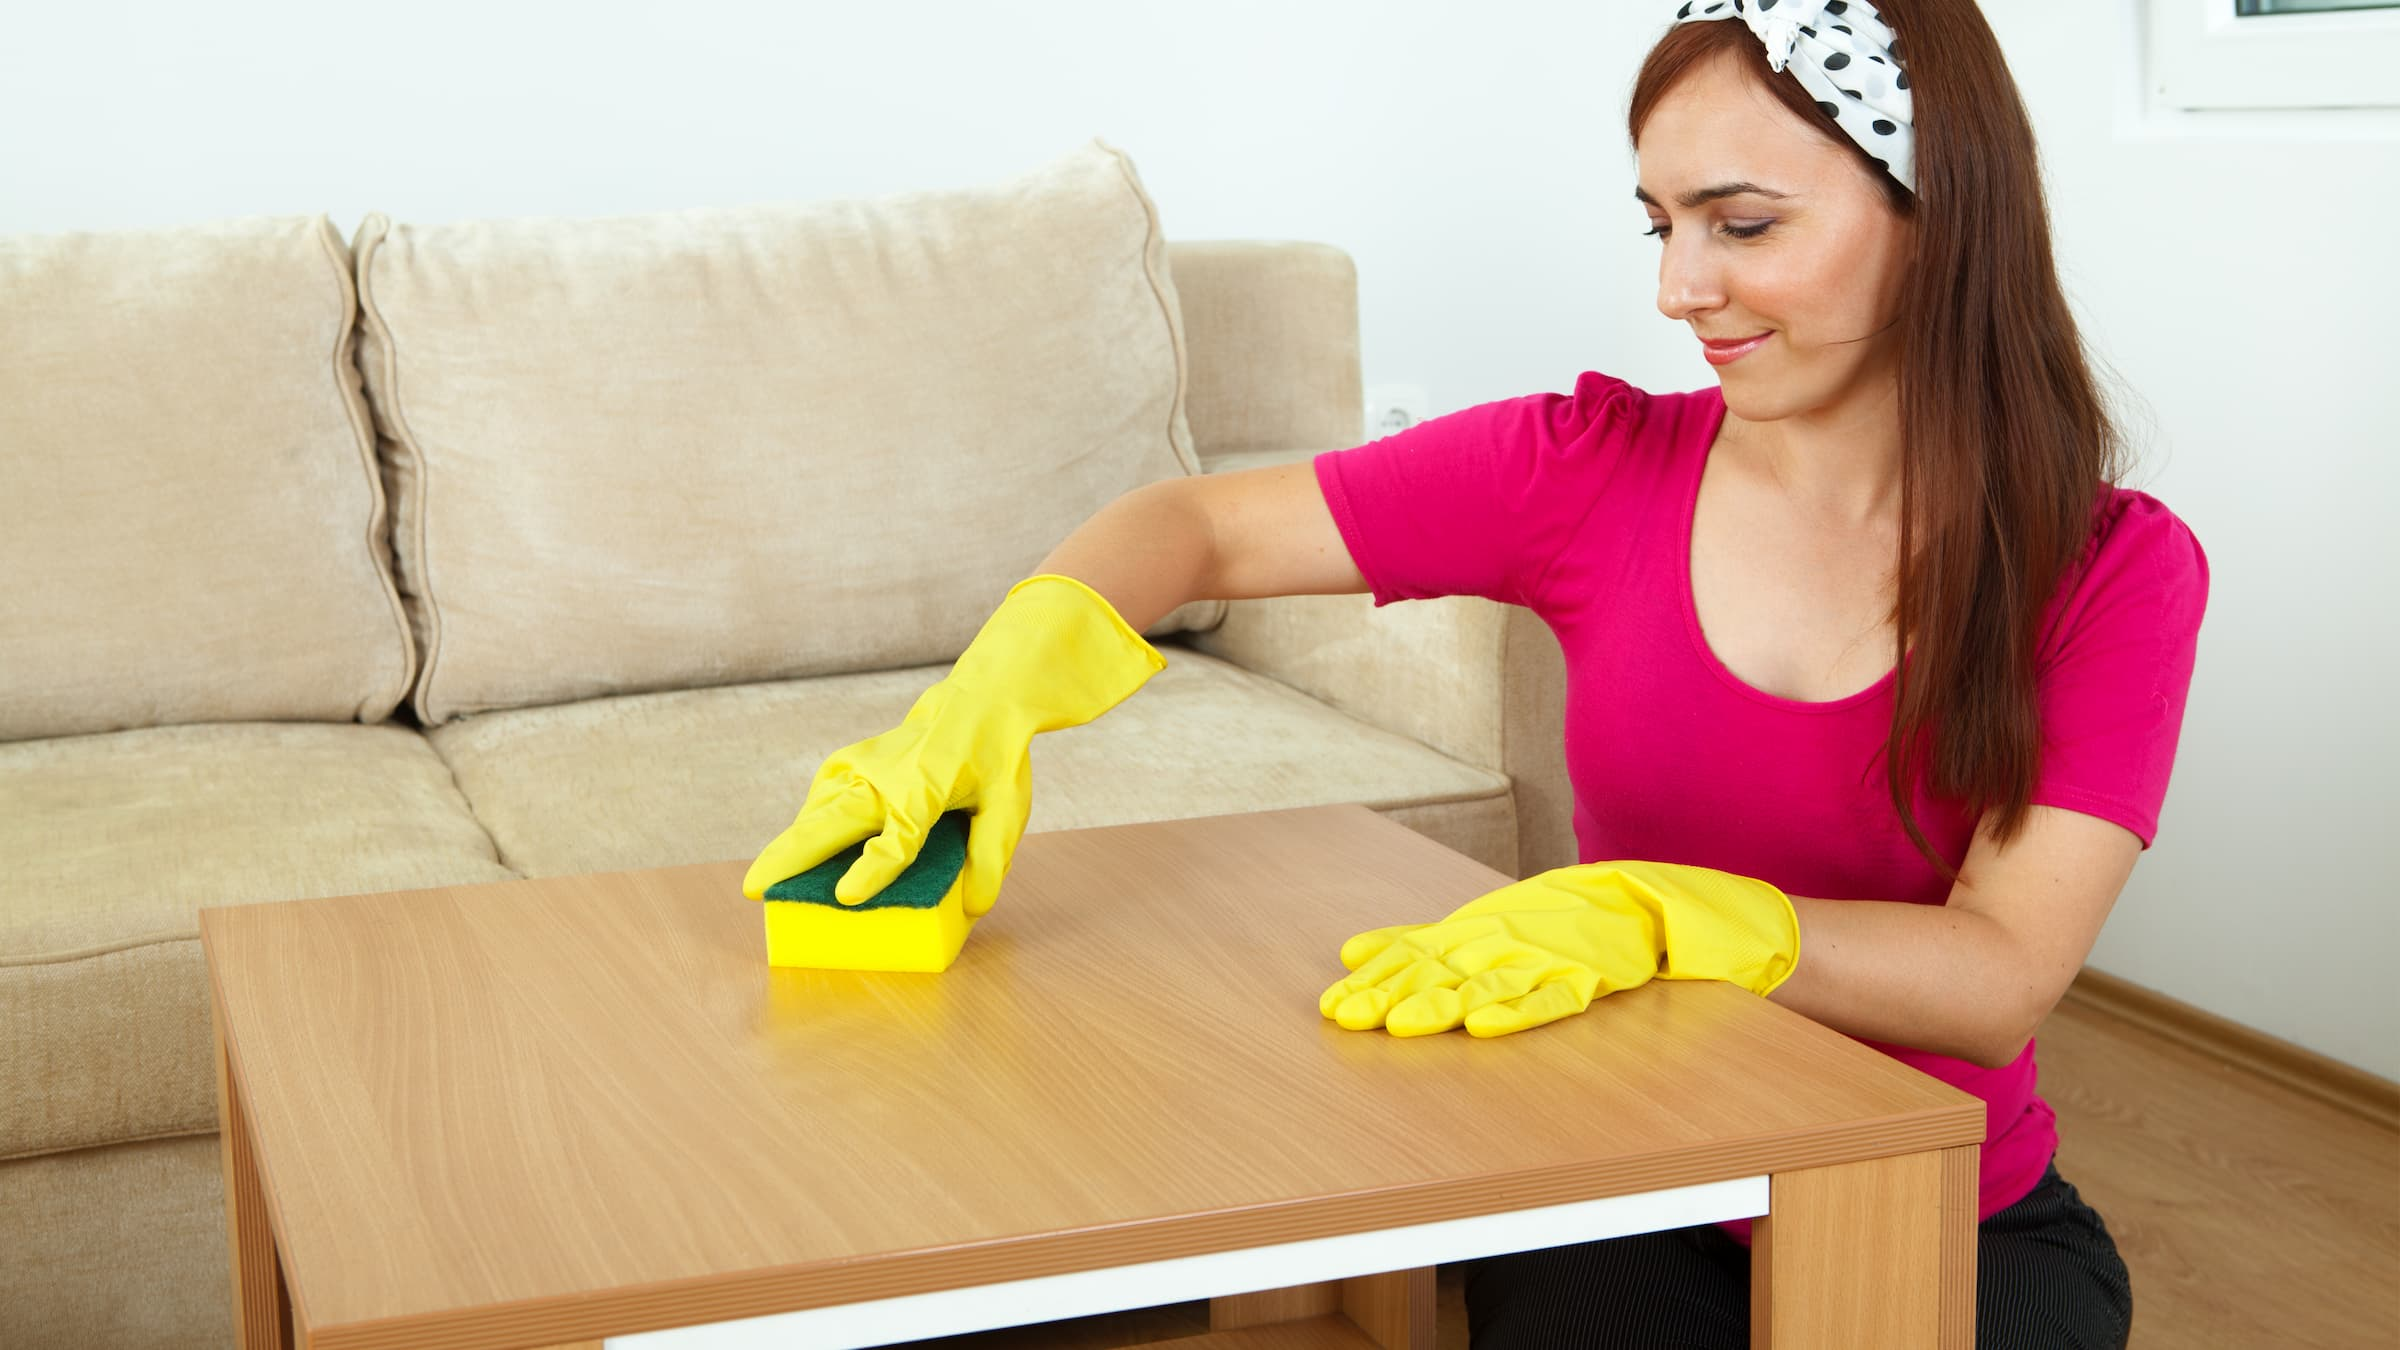 If you want to keep your home in tip top shape, then I recommend that you give these tips a try.